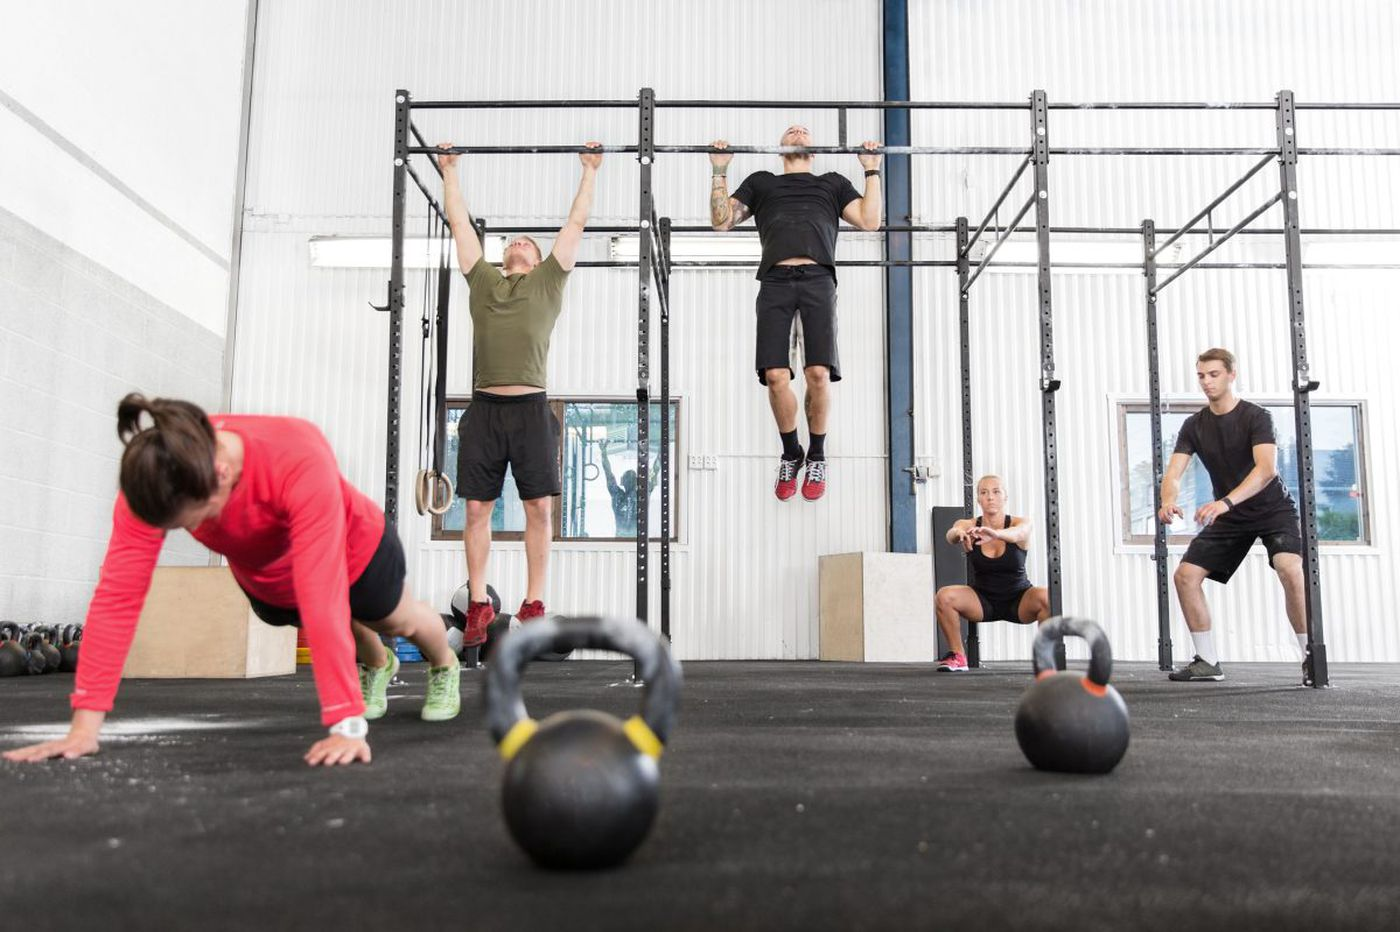 How to achieve better results from your workouts